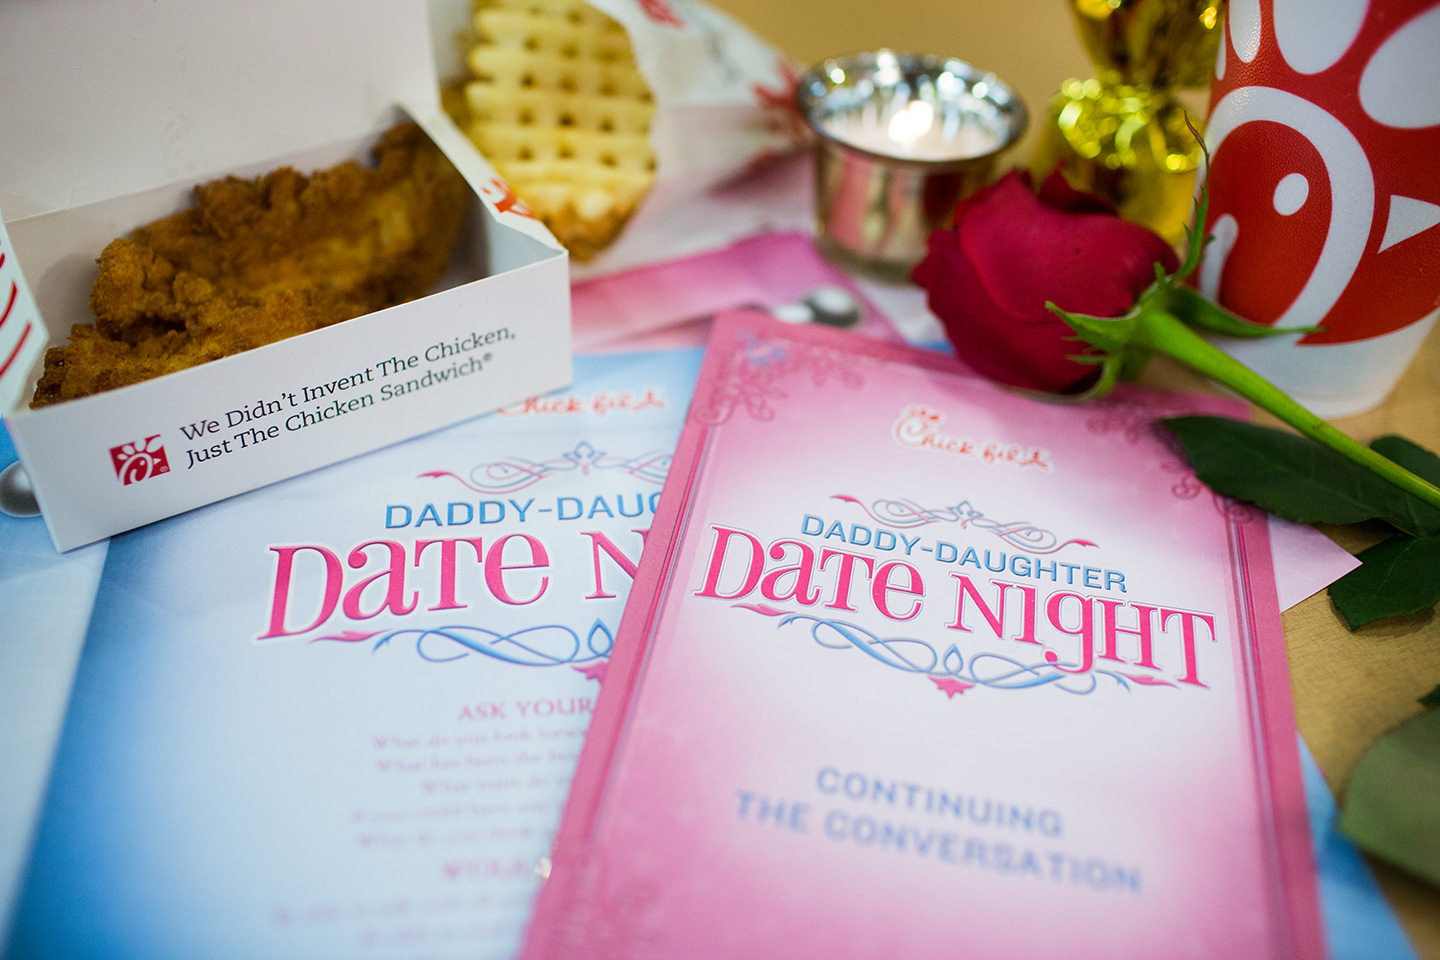 Chick-fil-a Daddy Daughter Date Night Images